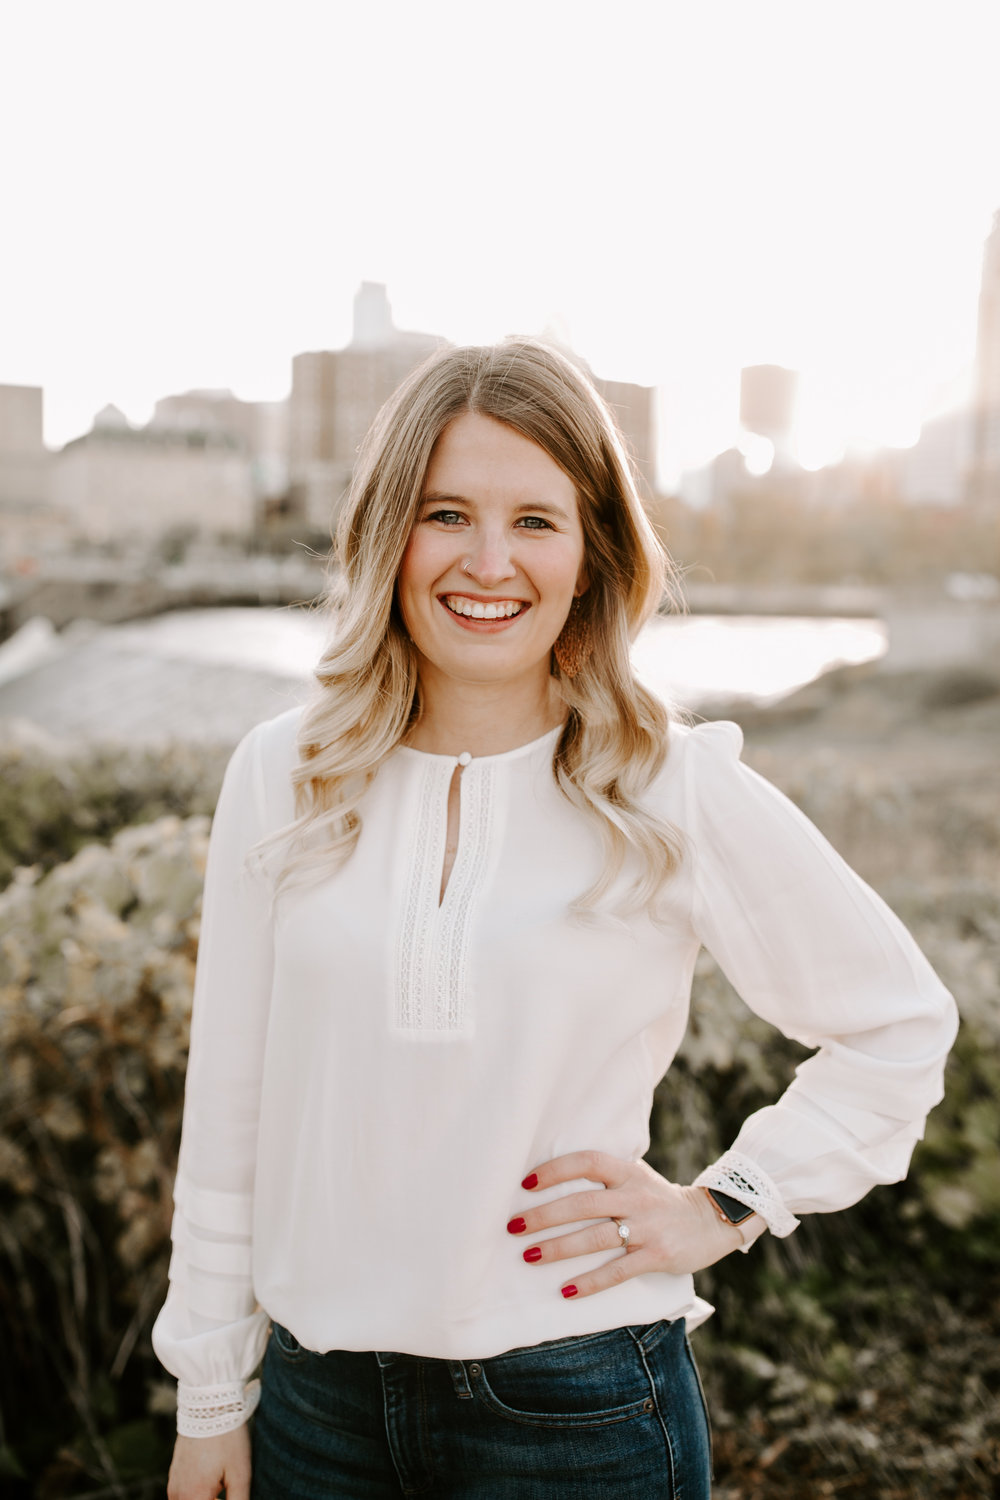 Hannah - Office Manager and OwnerHannah grew up in Dassel MN. It was in this small town that she met Dr. Ethan and they became high school sweethearts. She attended Minnesota State University, Mankato for undergrad and pursued a degree in Child Development and Family Studies. Following the completion of her degree she worked as a Family Educator for Scott, Carver and Dakota Counties. She has a passion for serving others, and is so excited to continue that passion at TOV Chiropractic.Hannah was introduced to chiropractic as a small child and always sought out chiropractic care as a first resort. She has seen great results being under Chiropractic care. Growing up, Hannah experienced many digestive issues on a regular basis, which found her seeking answers with no relief. Through neurologically based chiropractic care, she has been able to improve the function of her immune and digestive systems, and she no longer suffers!Hannah is the co-owner and office manager at TOV Chiropractic. She is so excited to be back in the Mankato area and looks forward to serving the community through neurologically based Chiropractic care. When Hannah is not in the office she enjoys spending time with family, being outside, and a good cup of coffee.